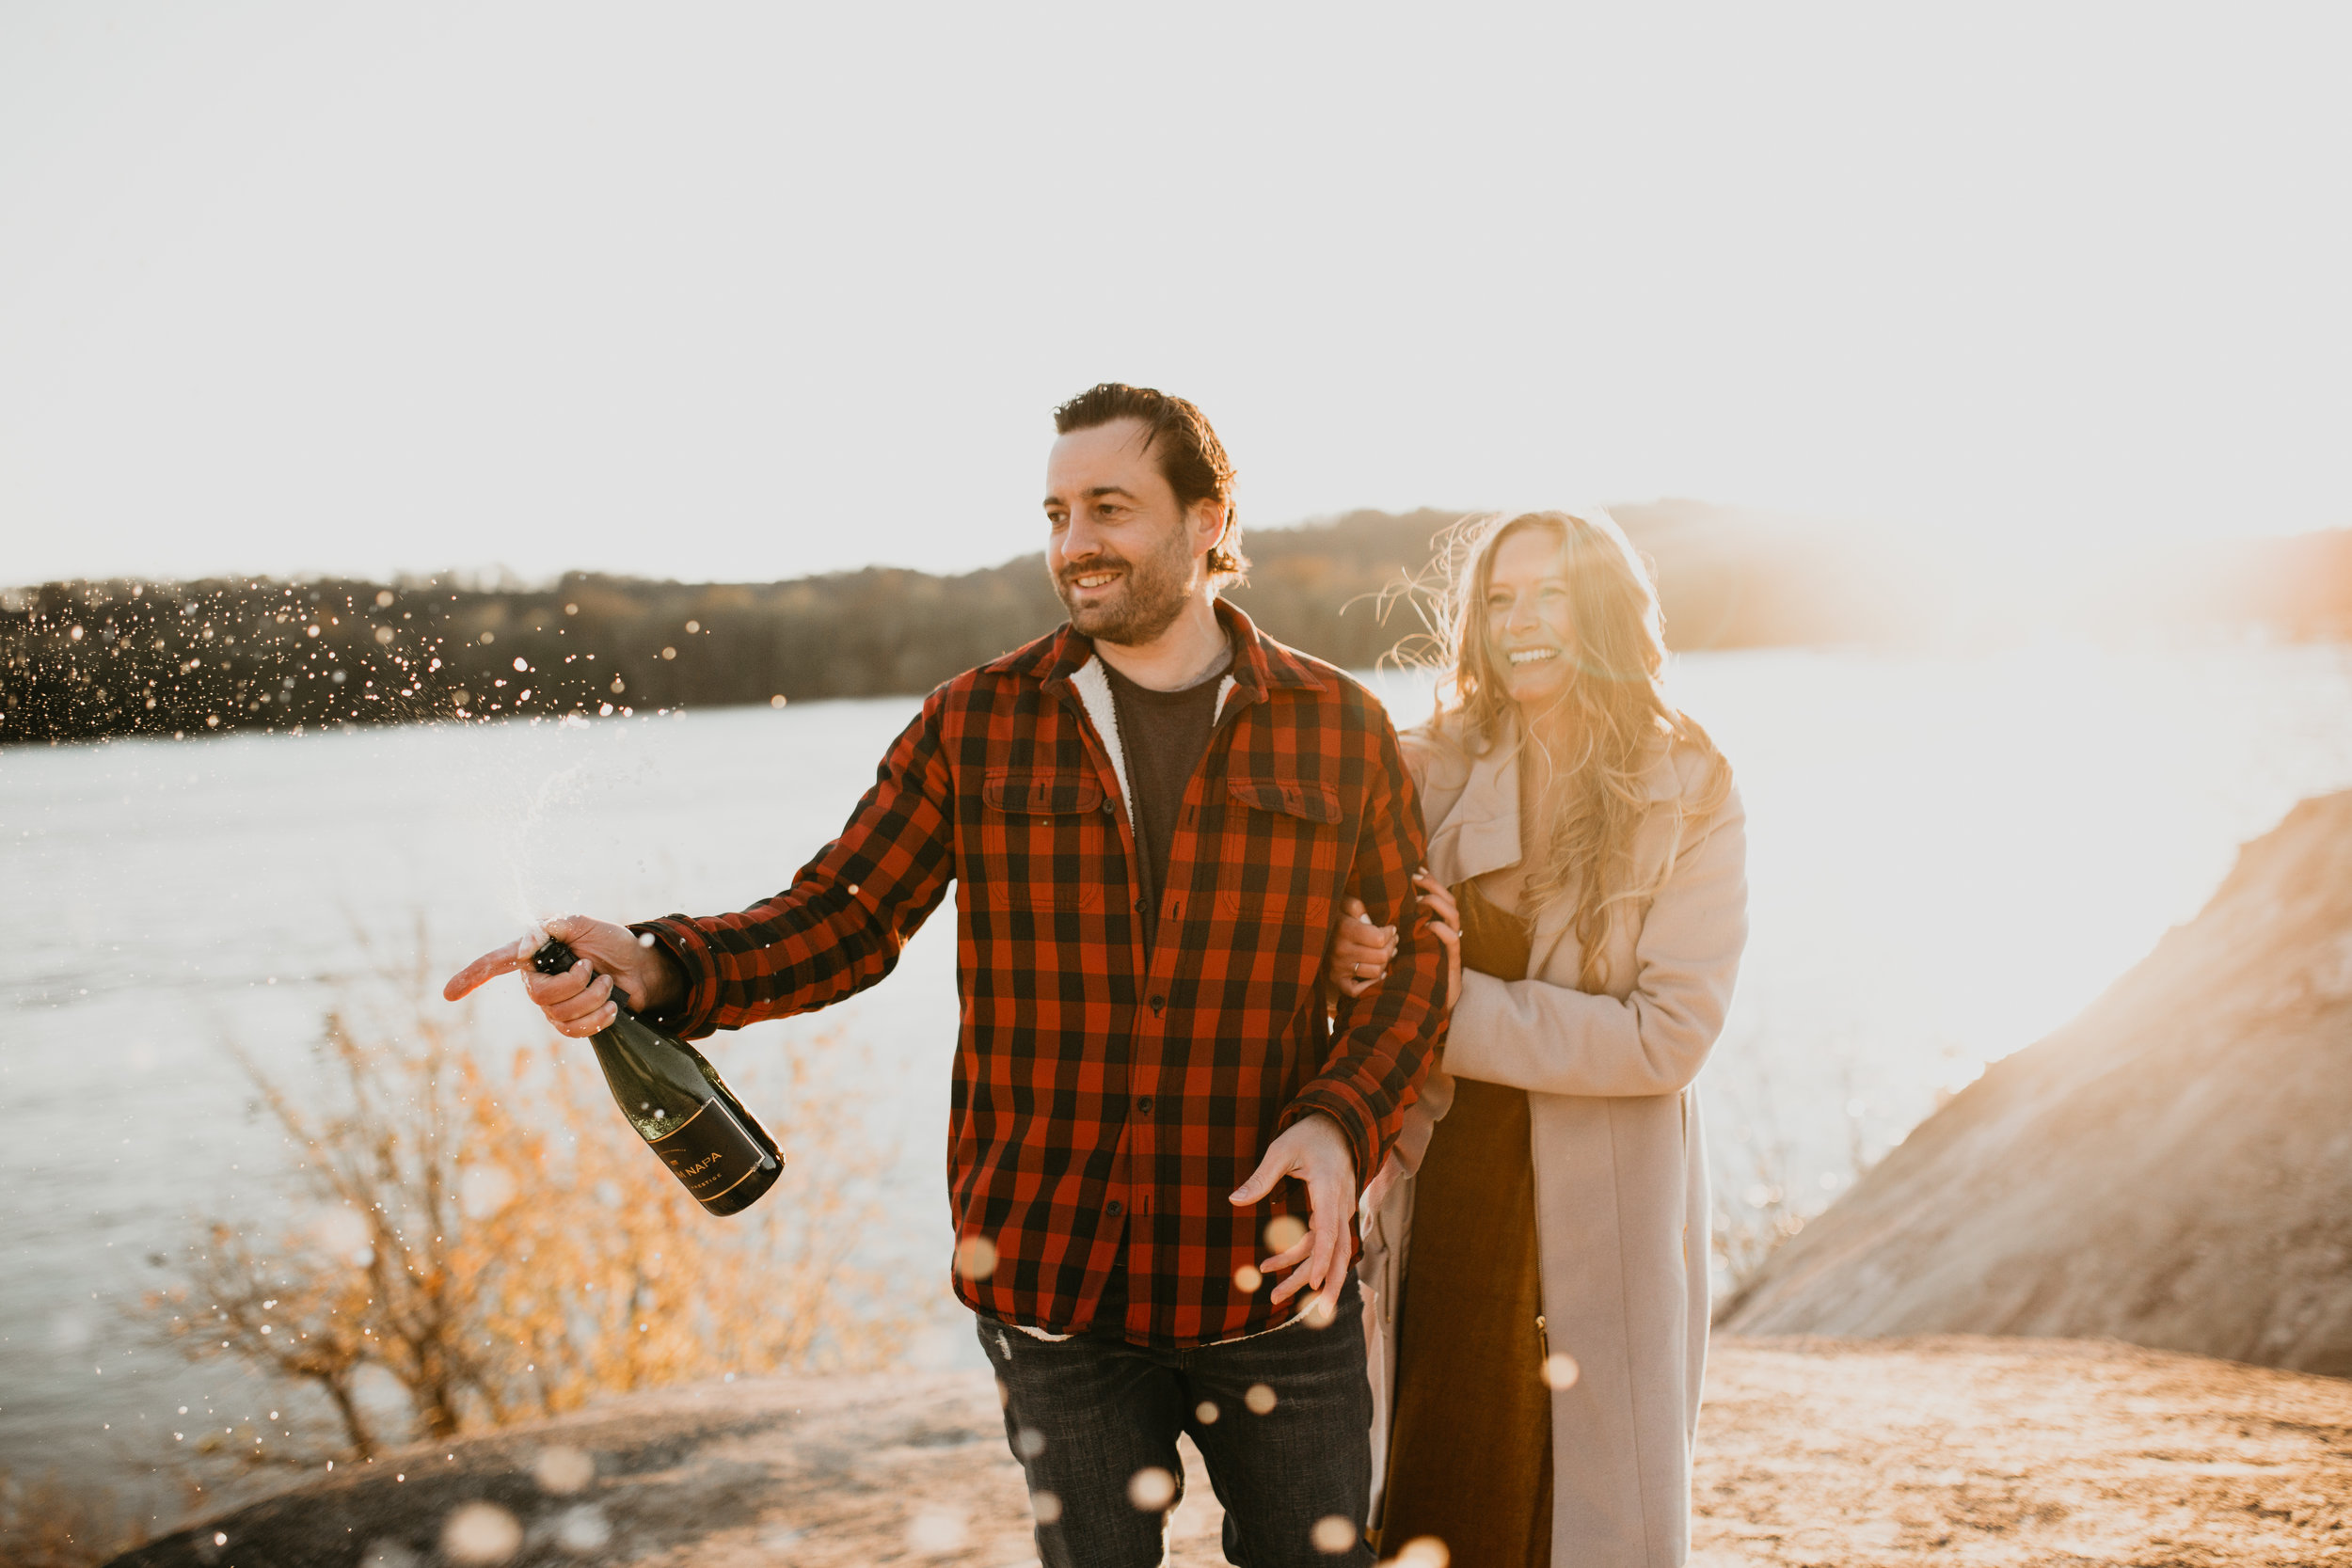 nicole-daacke-photography-white-cliffs-of-conoy-in-lancaster-pa-pennsylvania-adventure-session-adventure-elopement-photographer-engagement session-in-lancaster-pa-photographer-golden-sunset-winter-solstice-wedding-riverside-elopement-4123.jpg